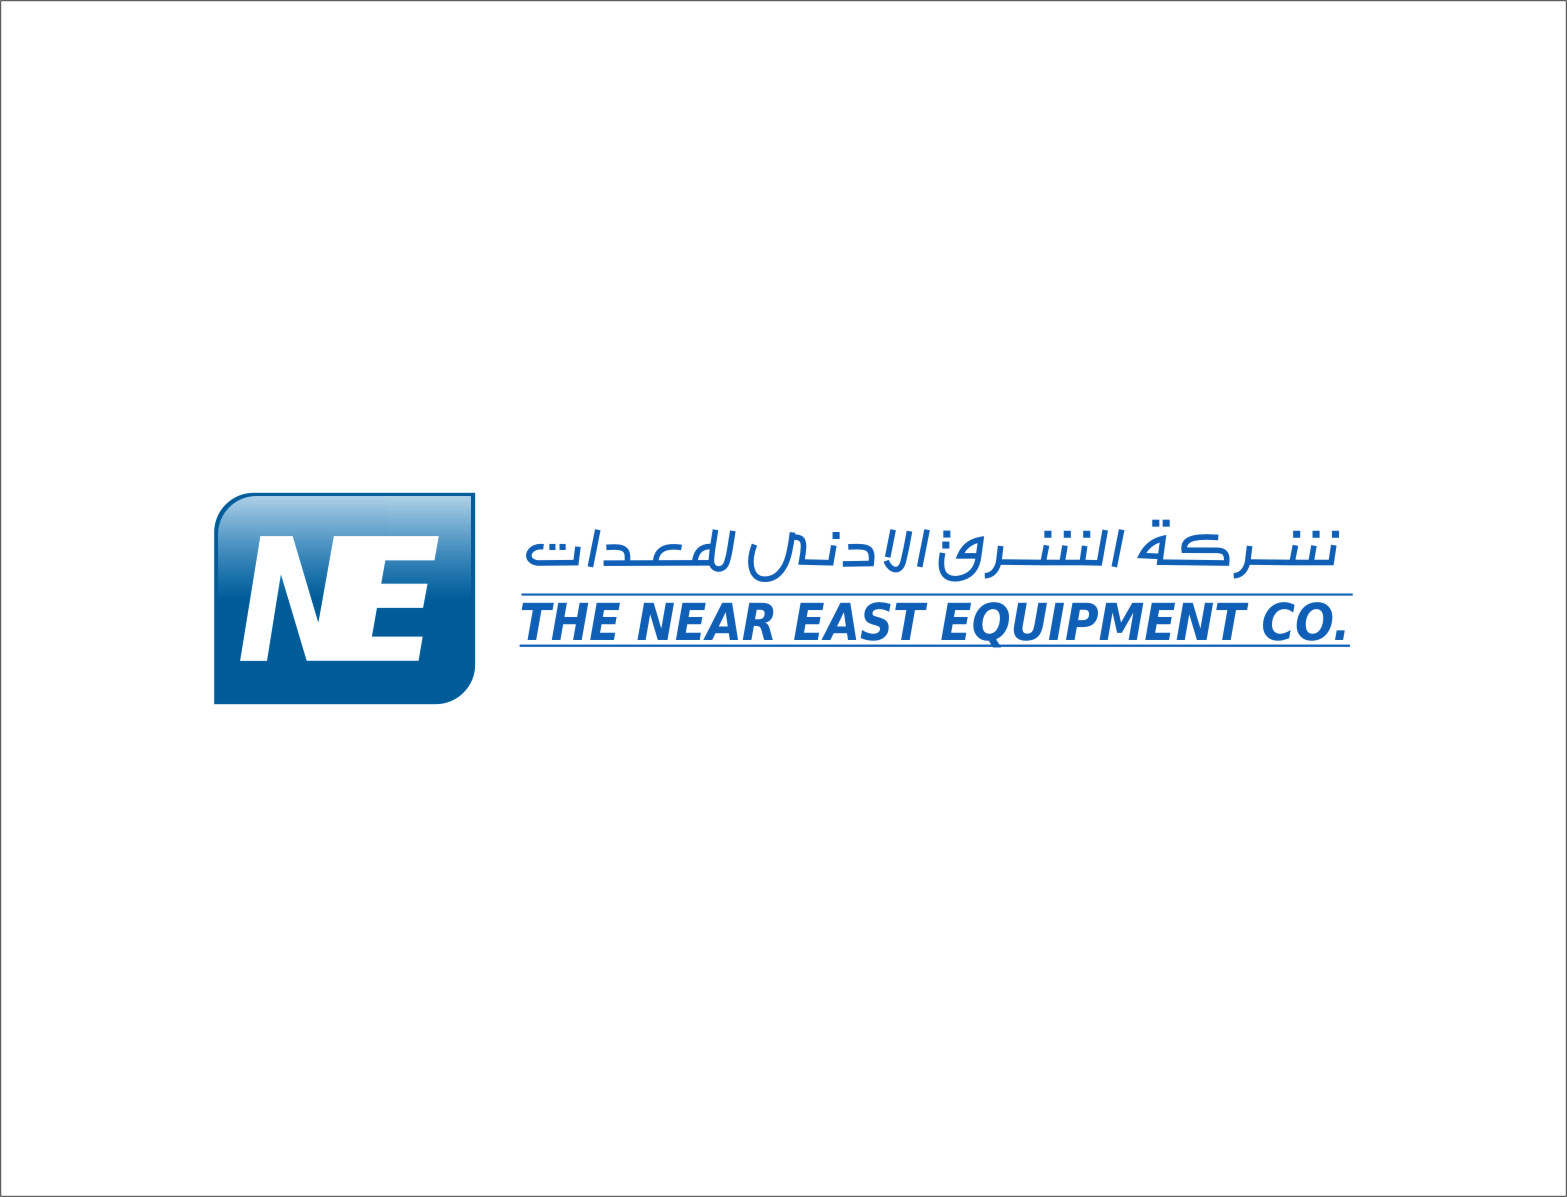 Logo Design by Ngepet_art - Entry No. 114 in the Logo Design Contest Imaginative Logo Design for The Near East Equipment Co..